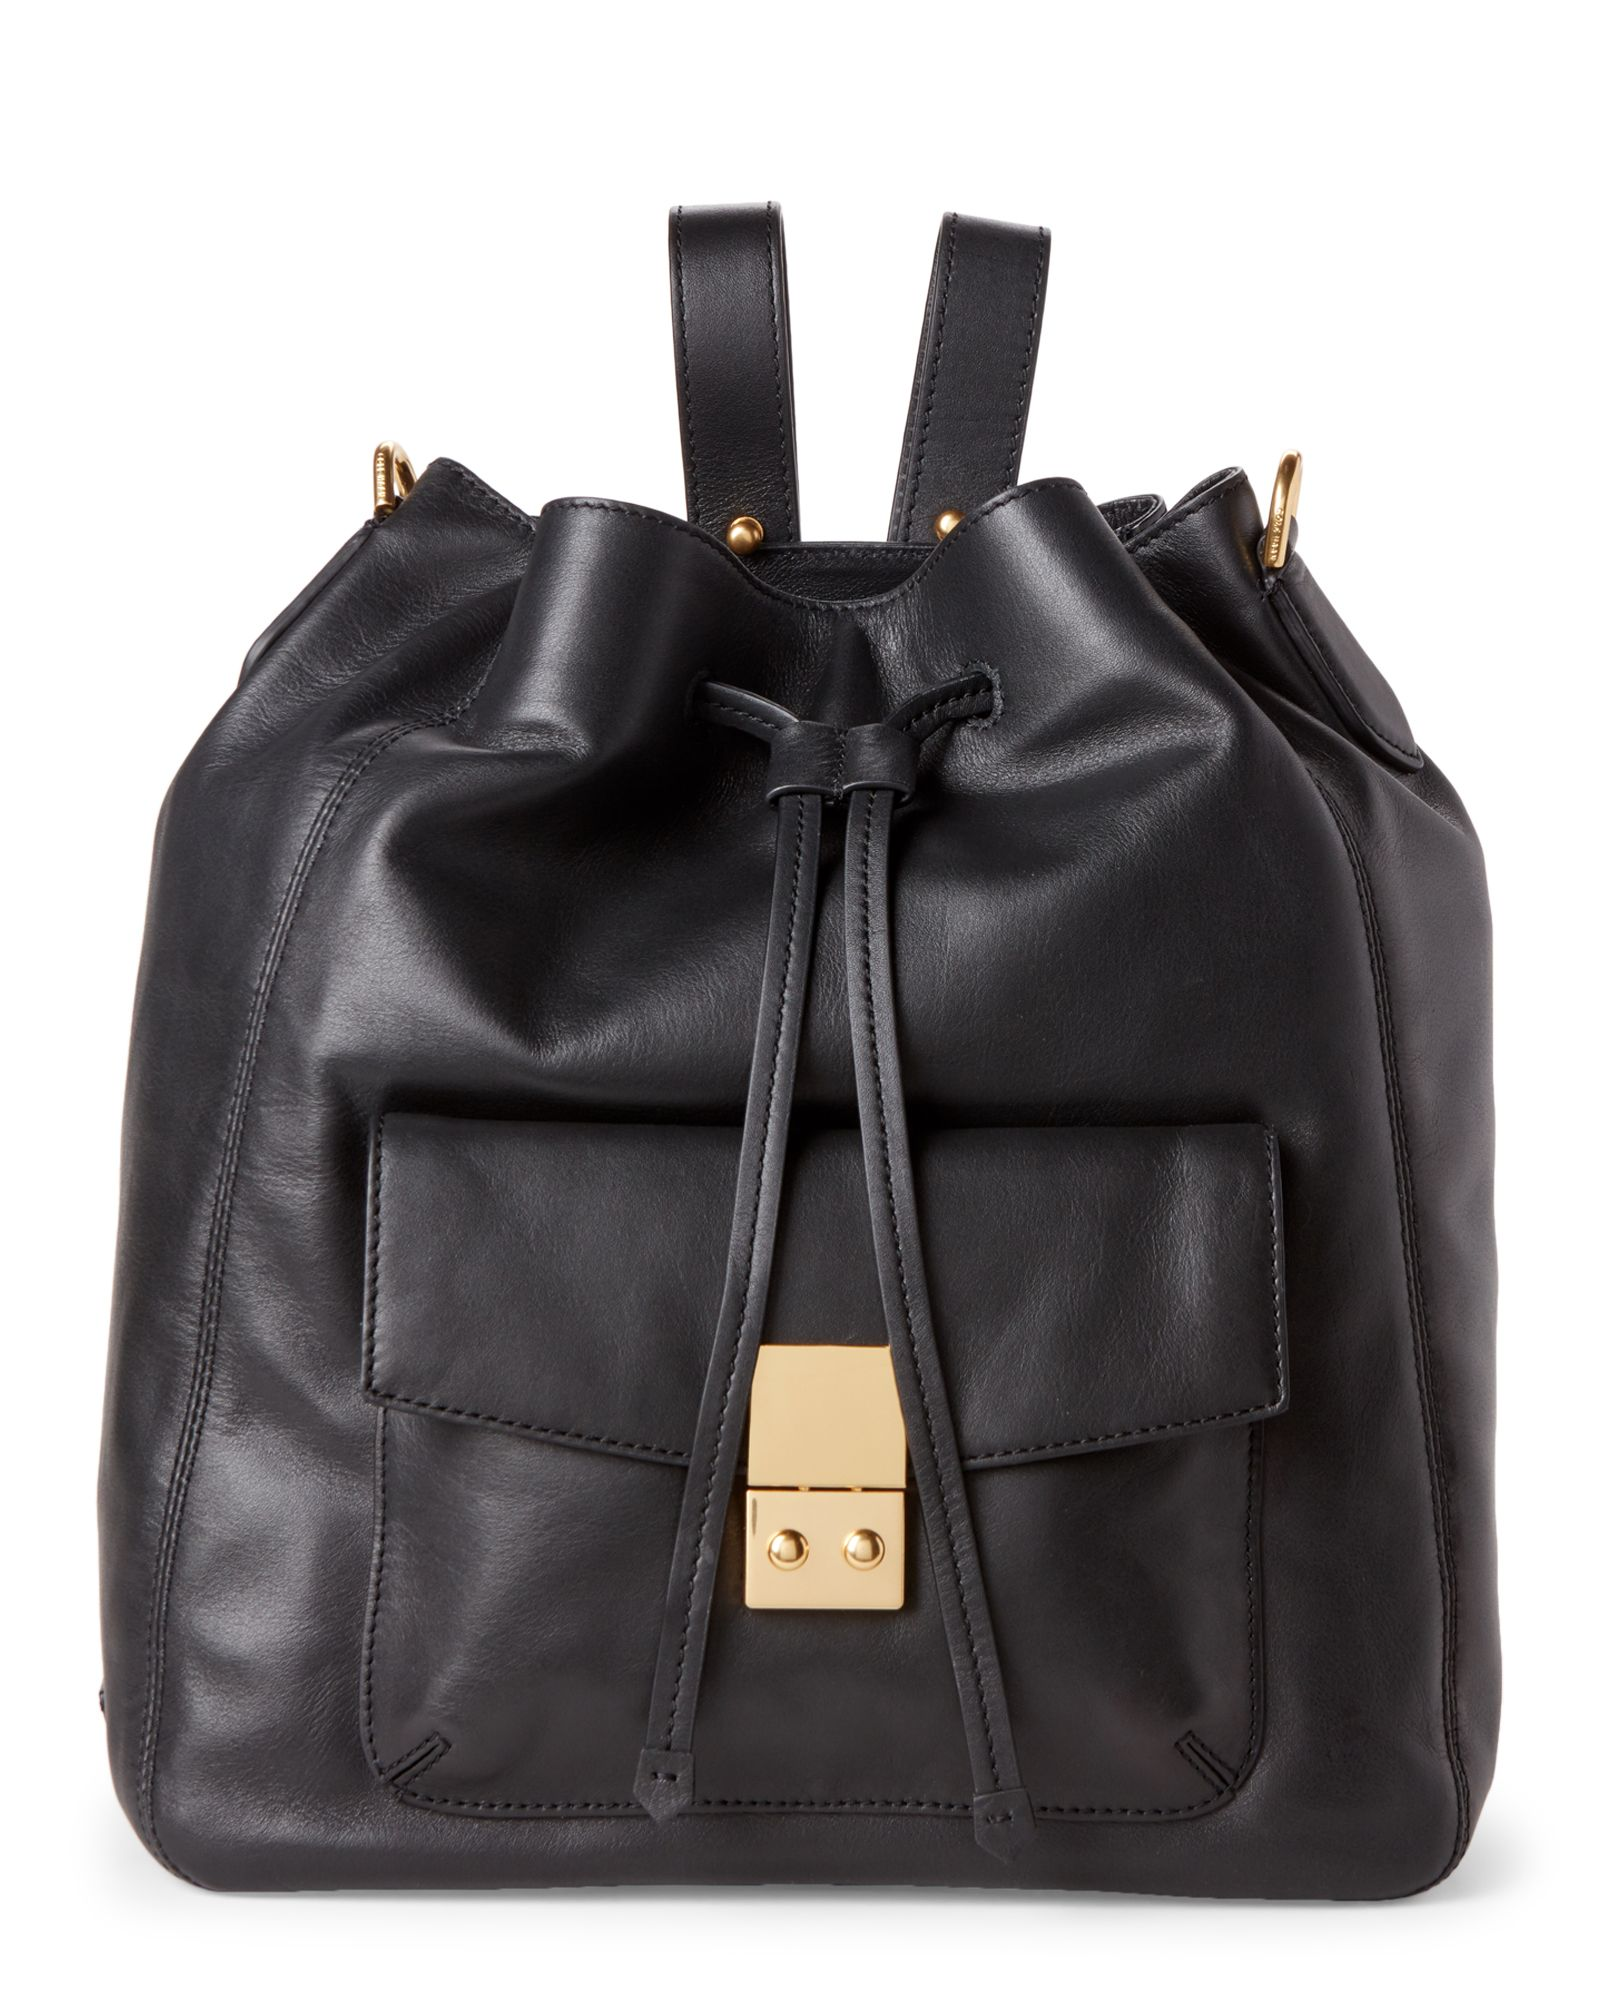 36c26755971f Cole Haan Black Alanna Convertible Leather Backpack Leather Backpack